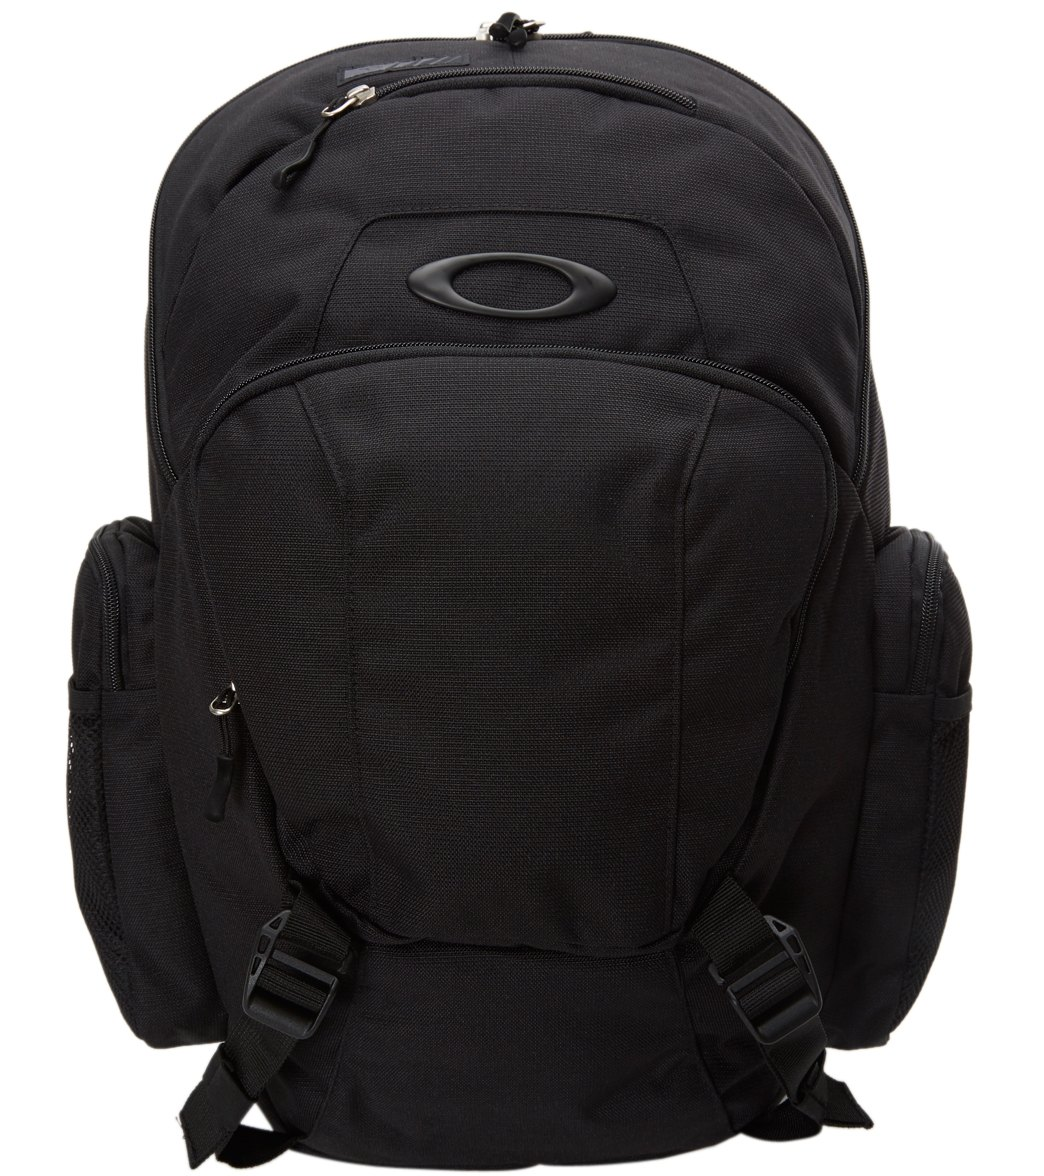 3456f4d5a0b Oakley Blade Wet Dry 30 Bag at SwimOutlet.com - Free Shipping